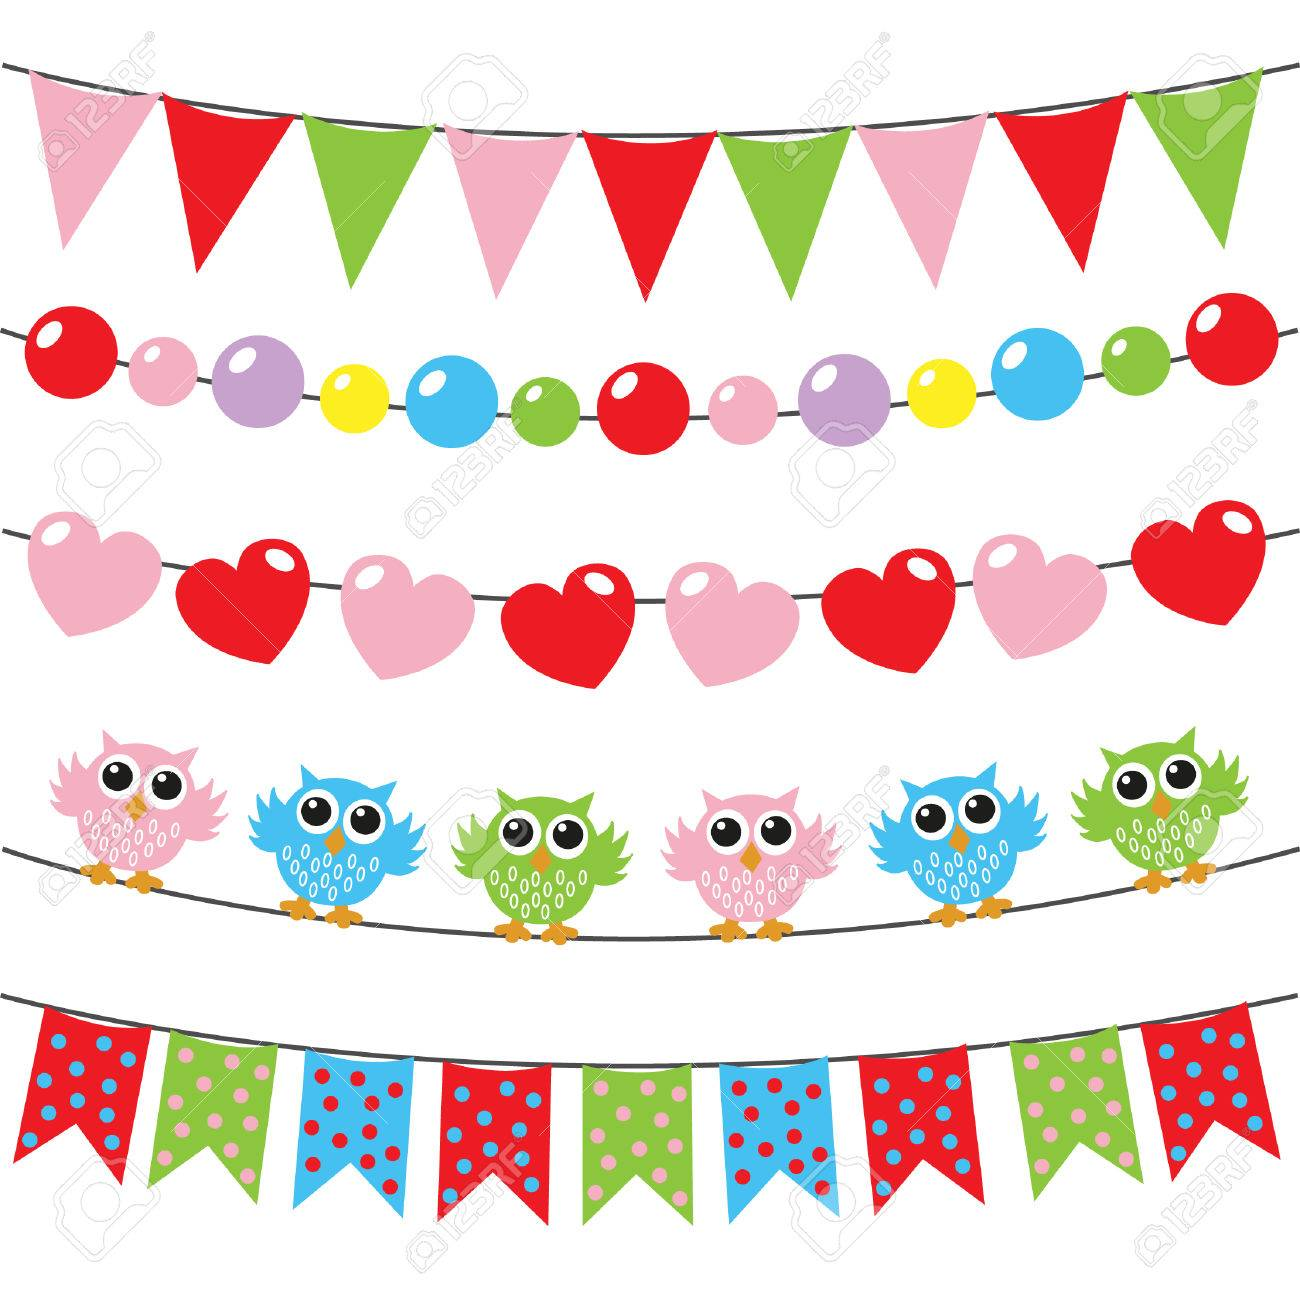 Happy Birthday Banners Wall Decorations Stock Vector